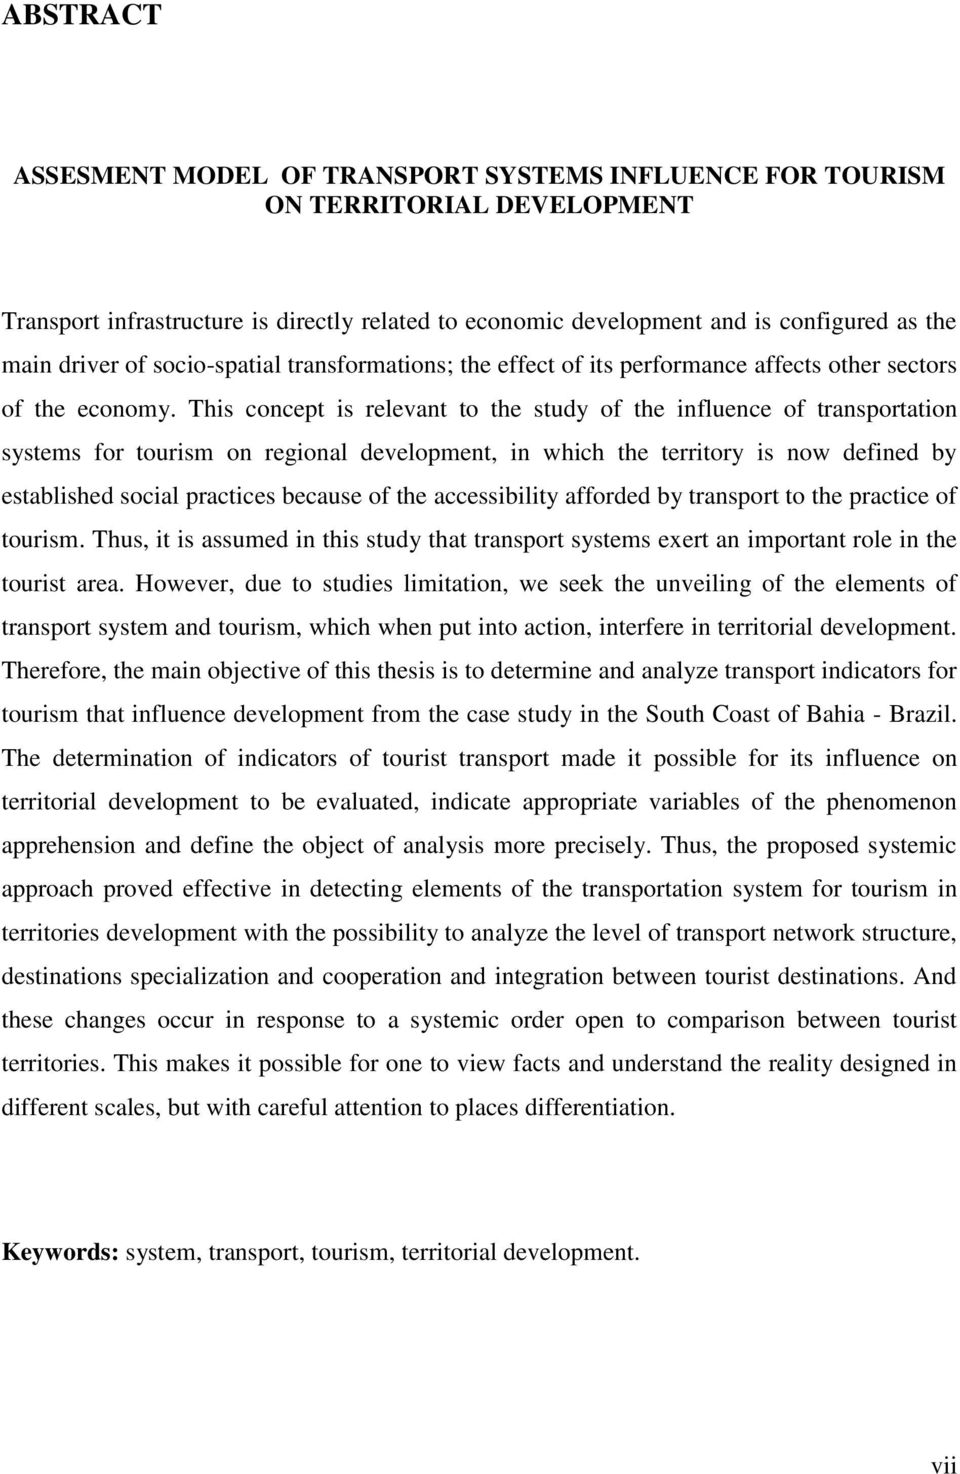 This concept is relevant to the study of the influence of transportation systems for tourism on regional development, in which the territory is now defined by established social practices because of